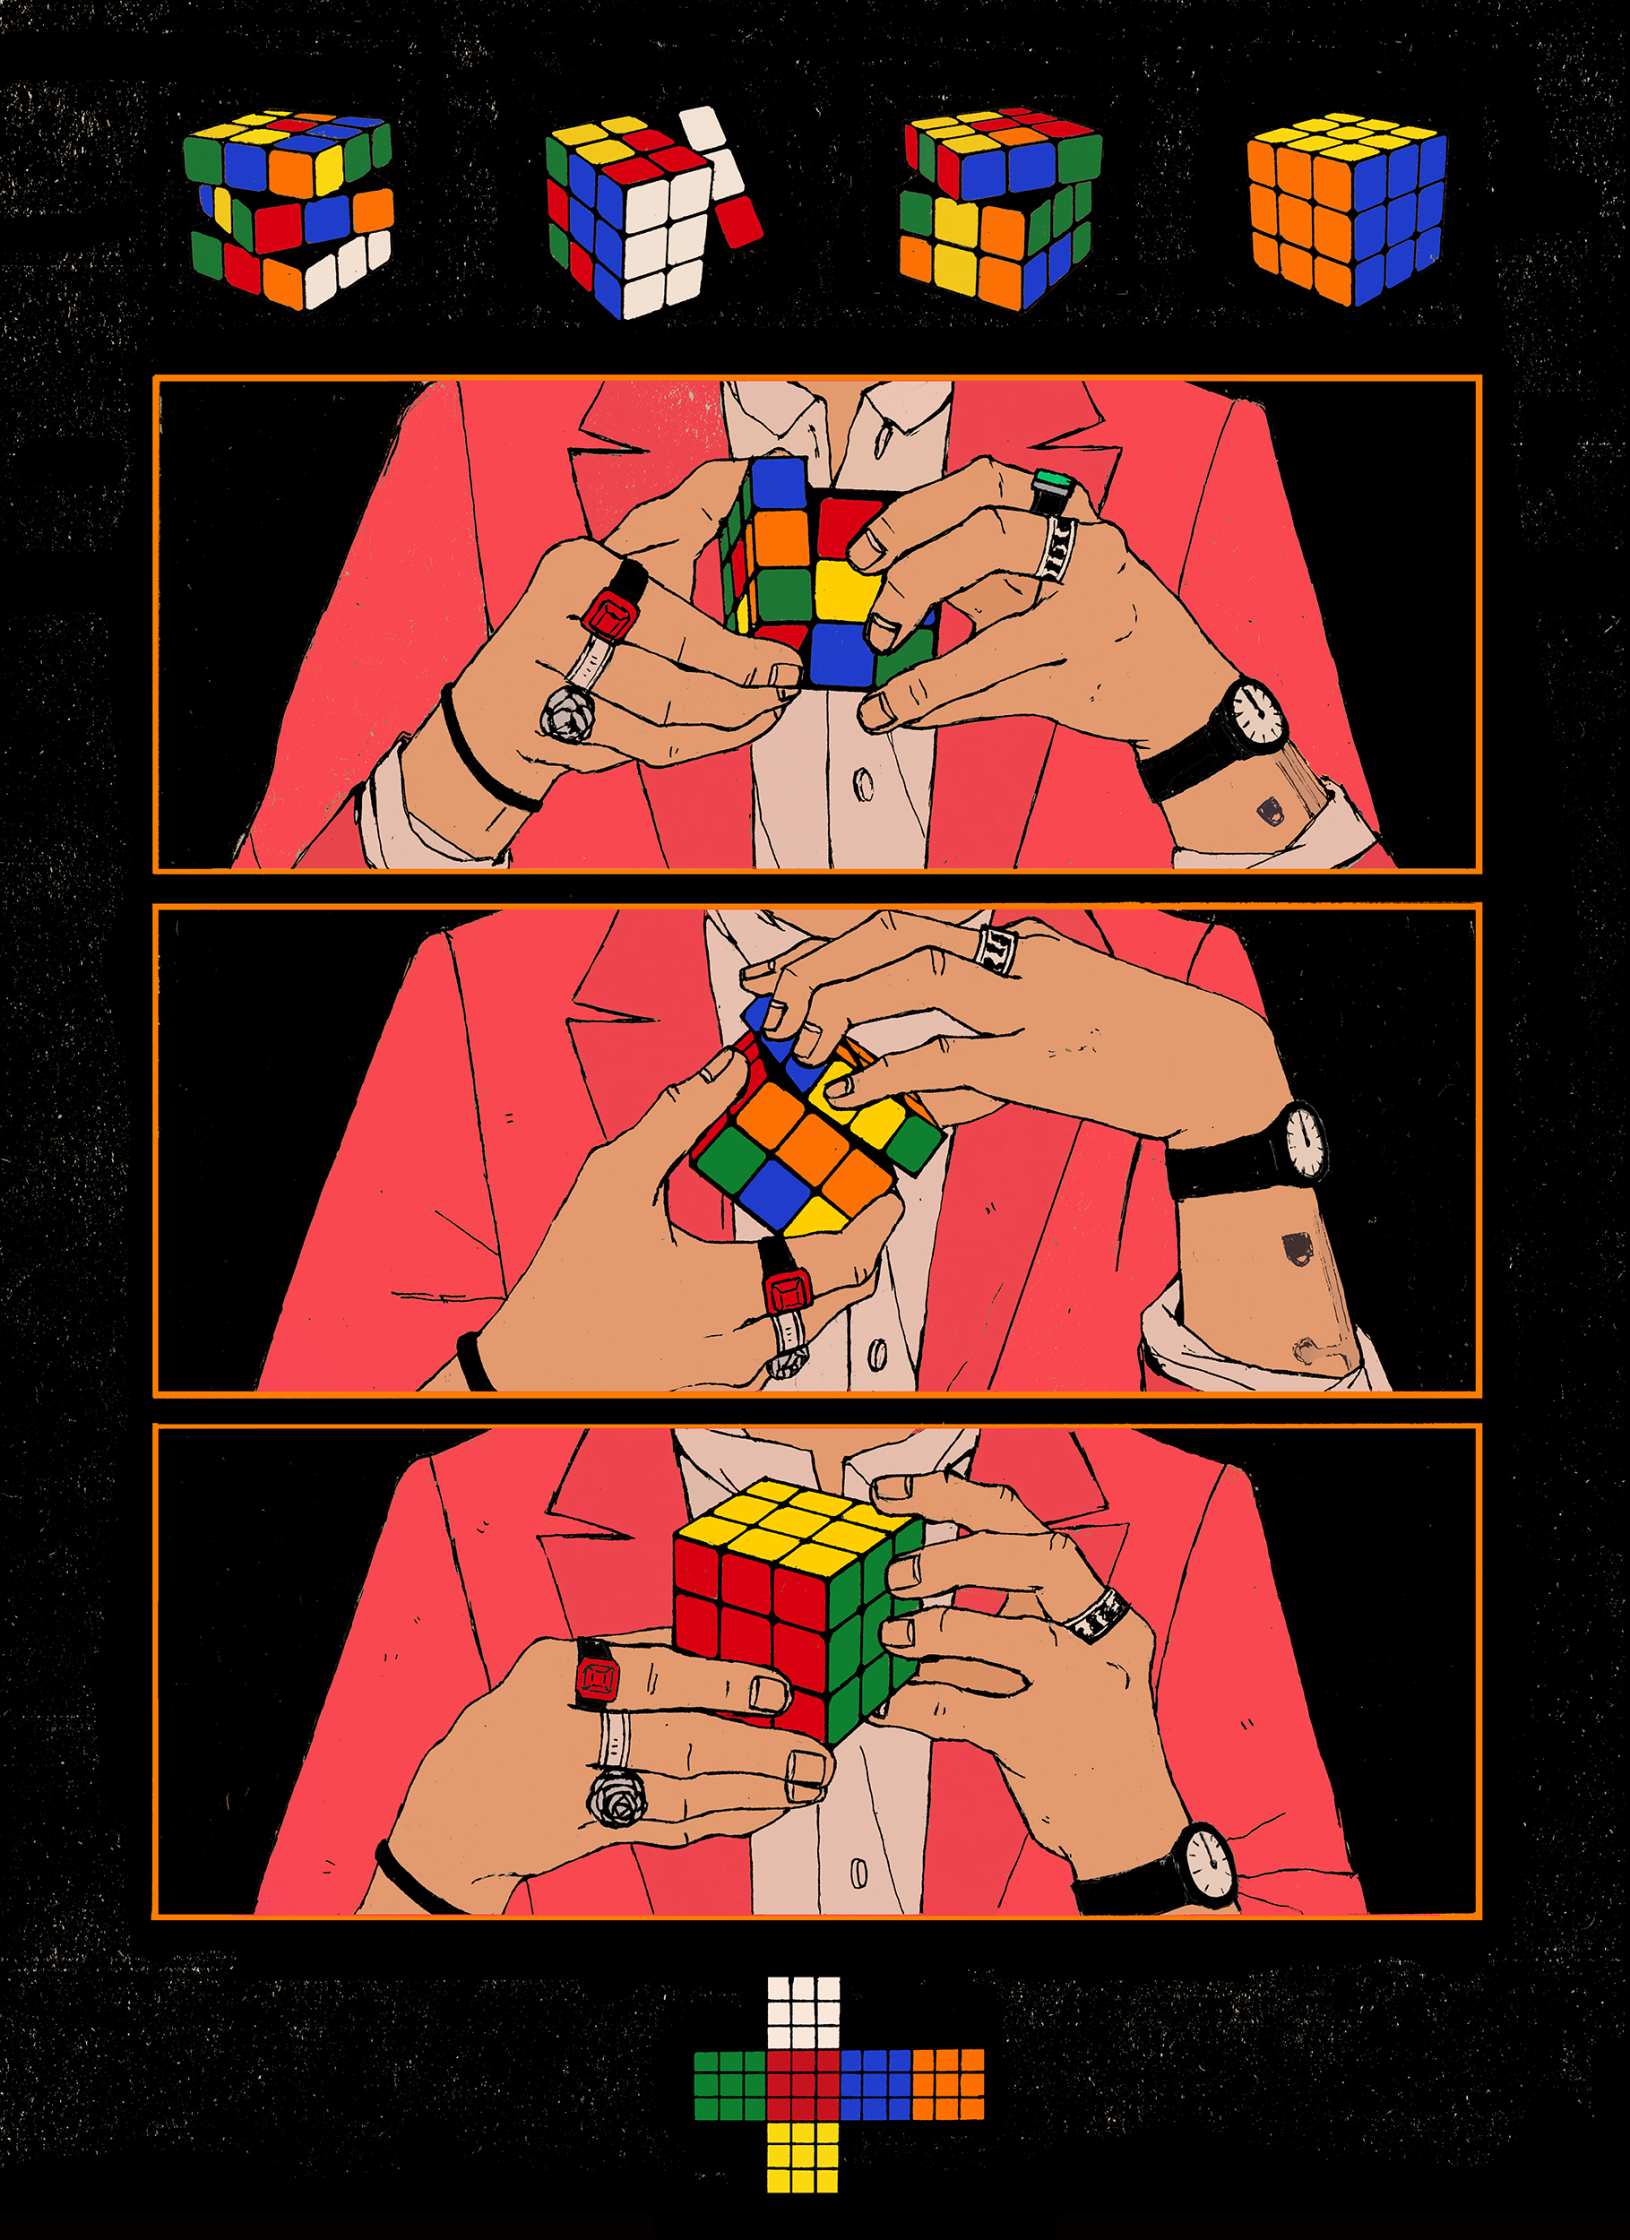 Rubik_s Cube [created for Harry Styles].jpg